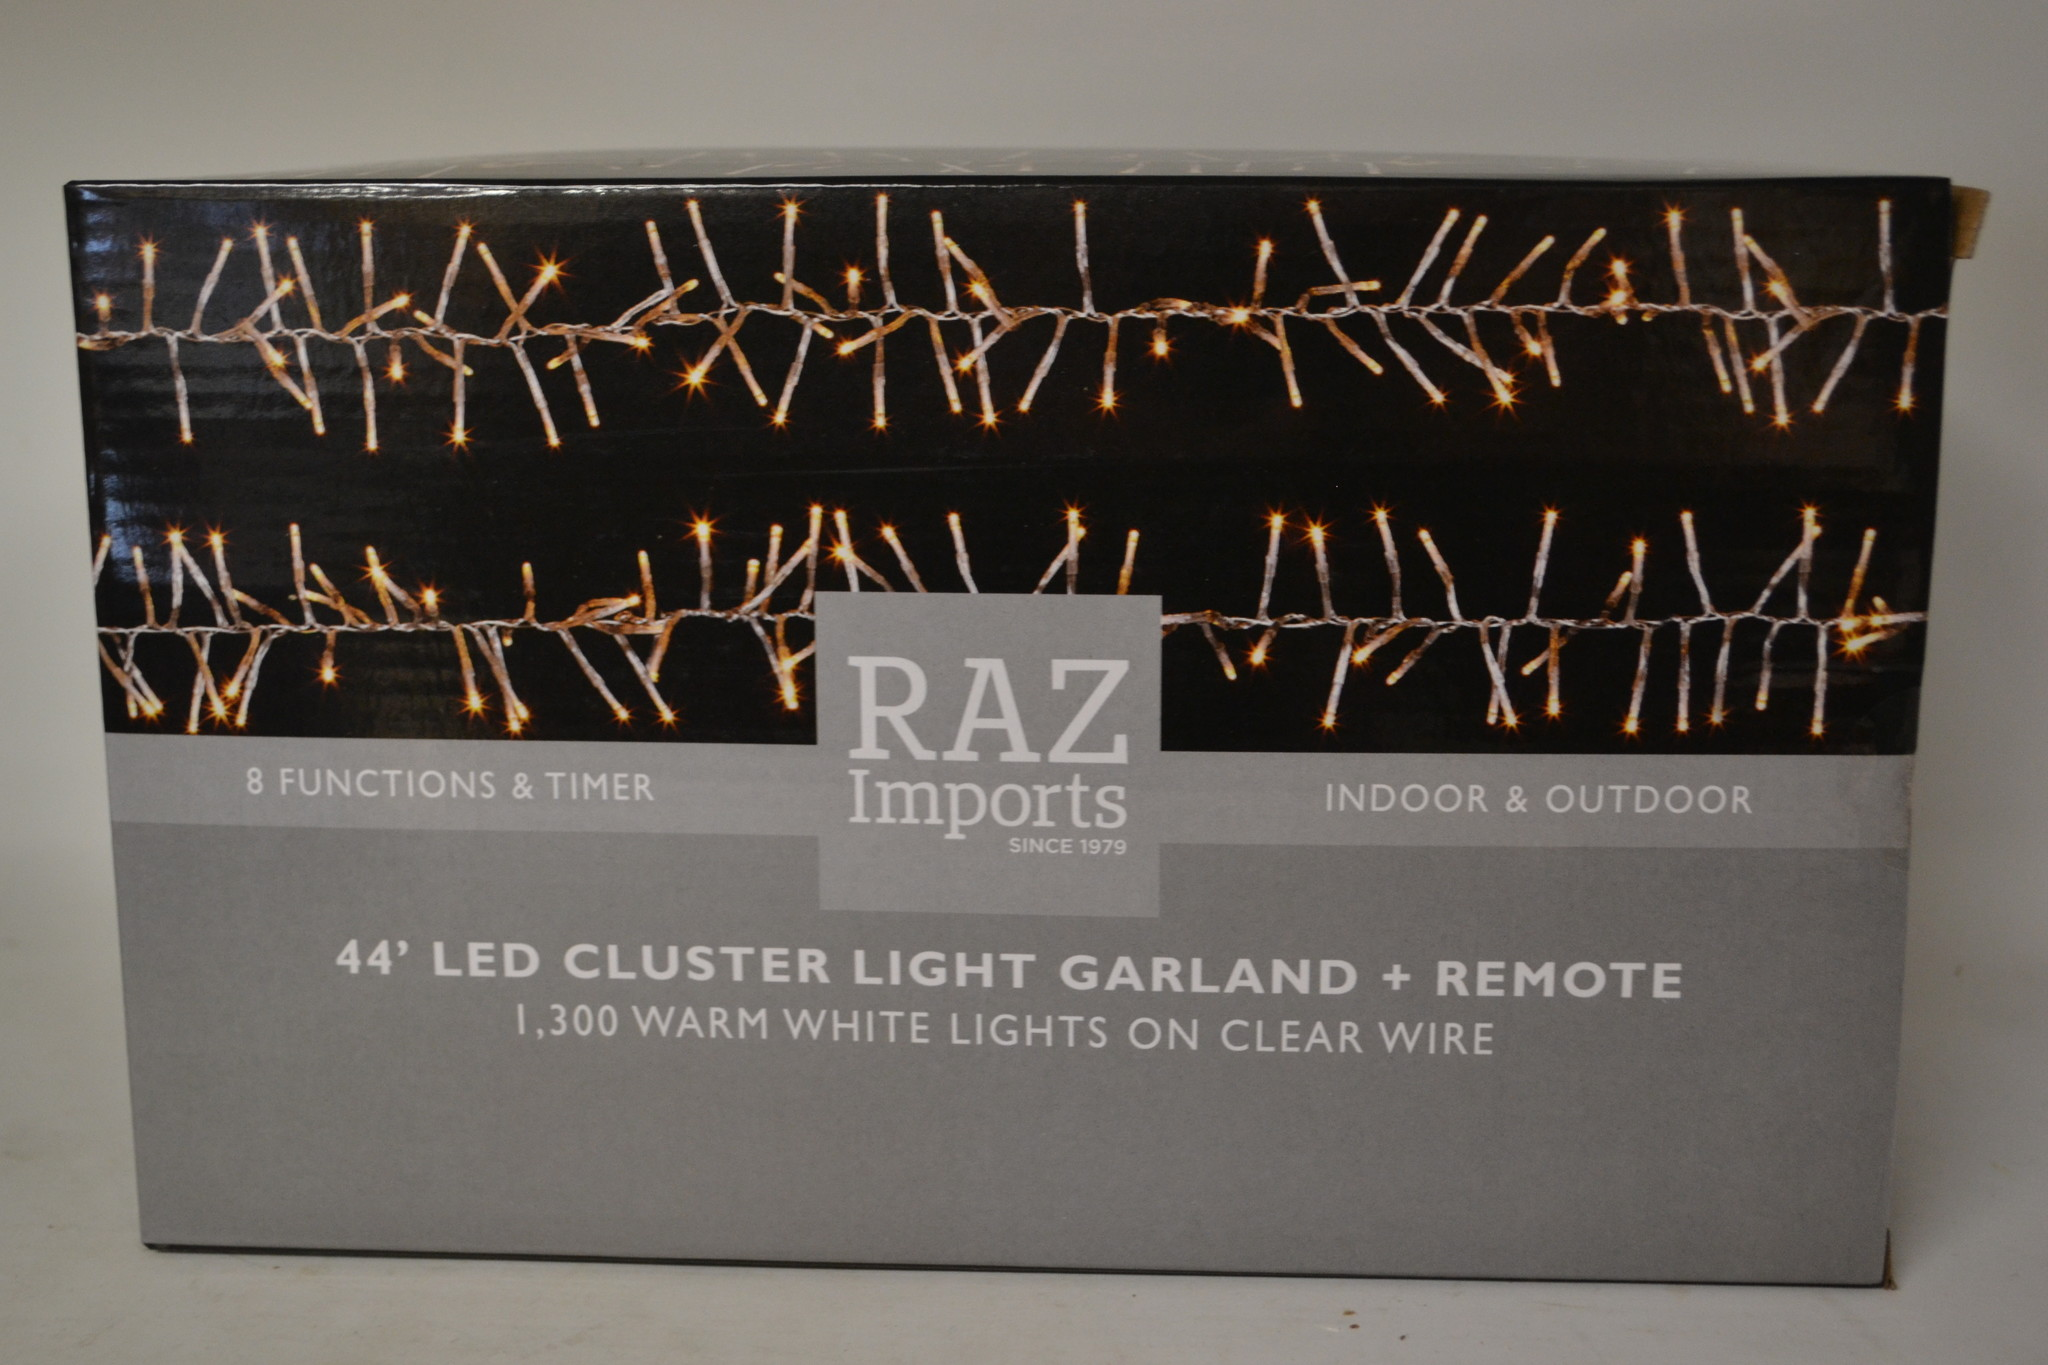 44-Ft. Clear Wire Cluster 1300 White Lights w/ Remote